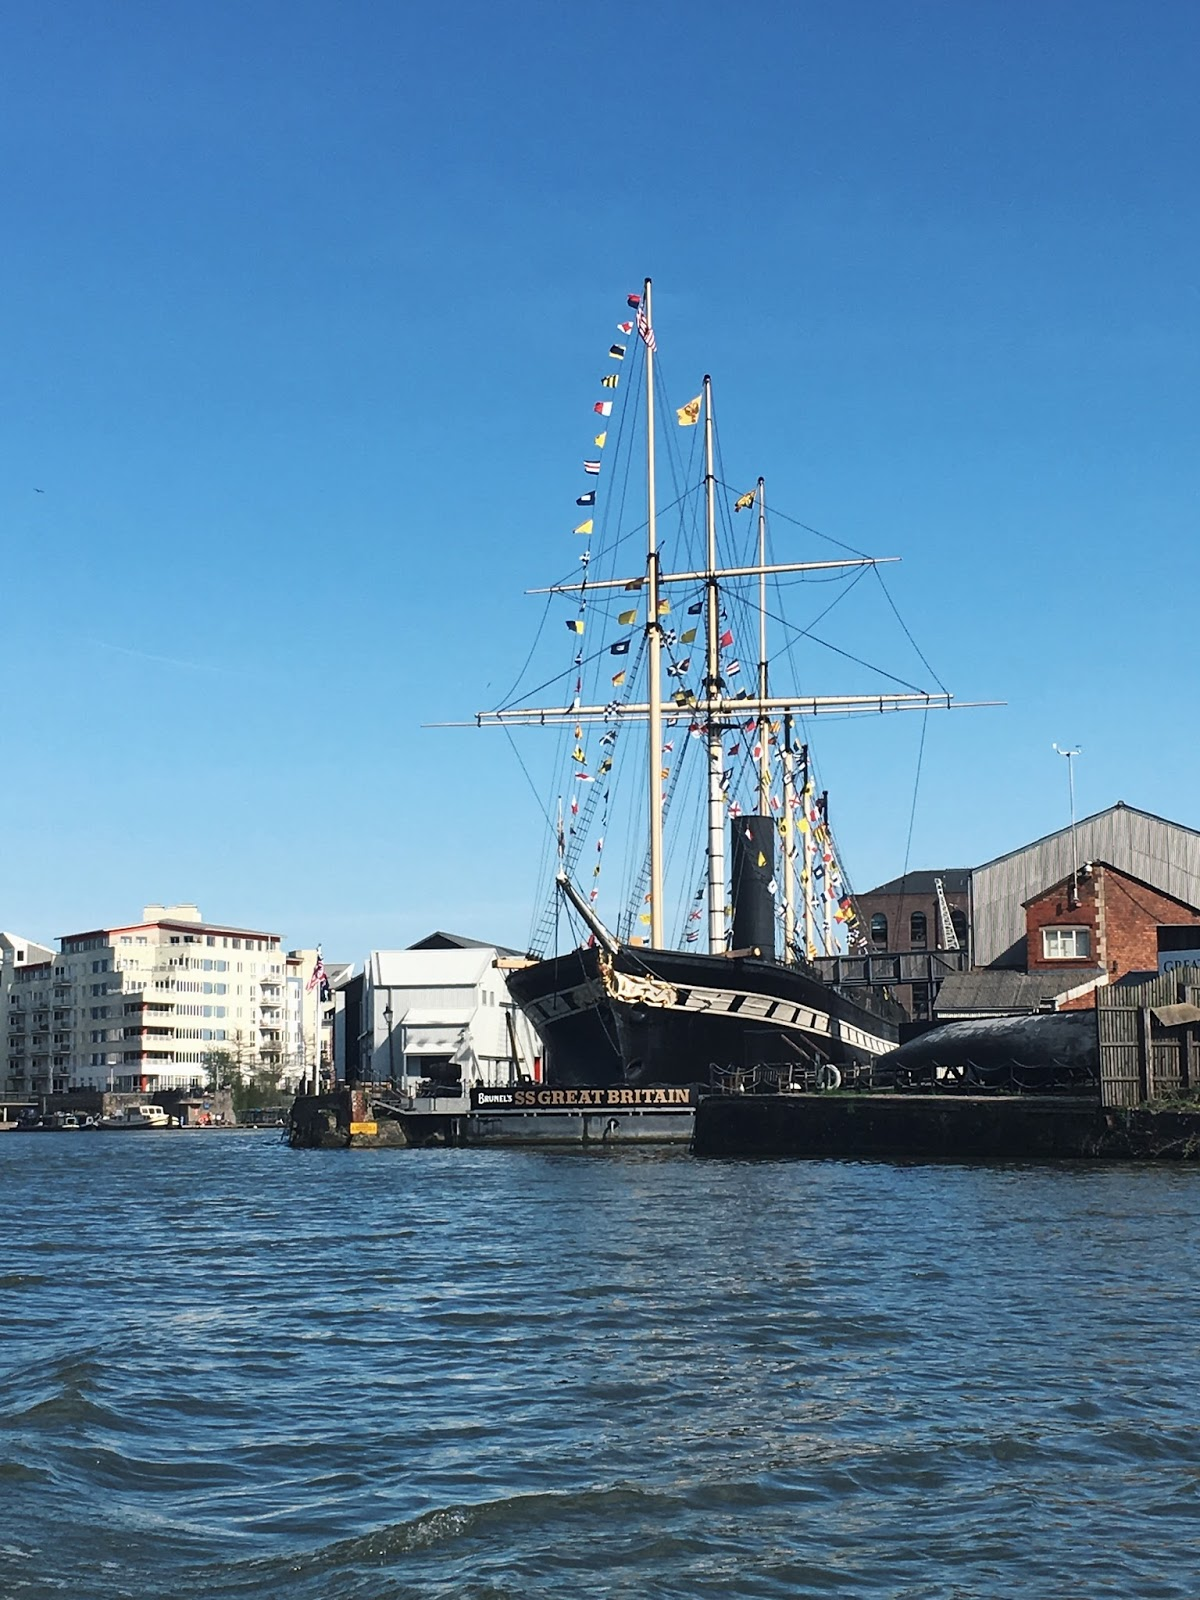 bristol ss great britain